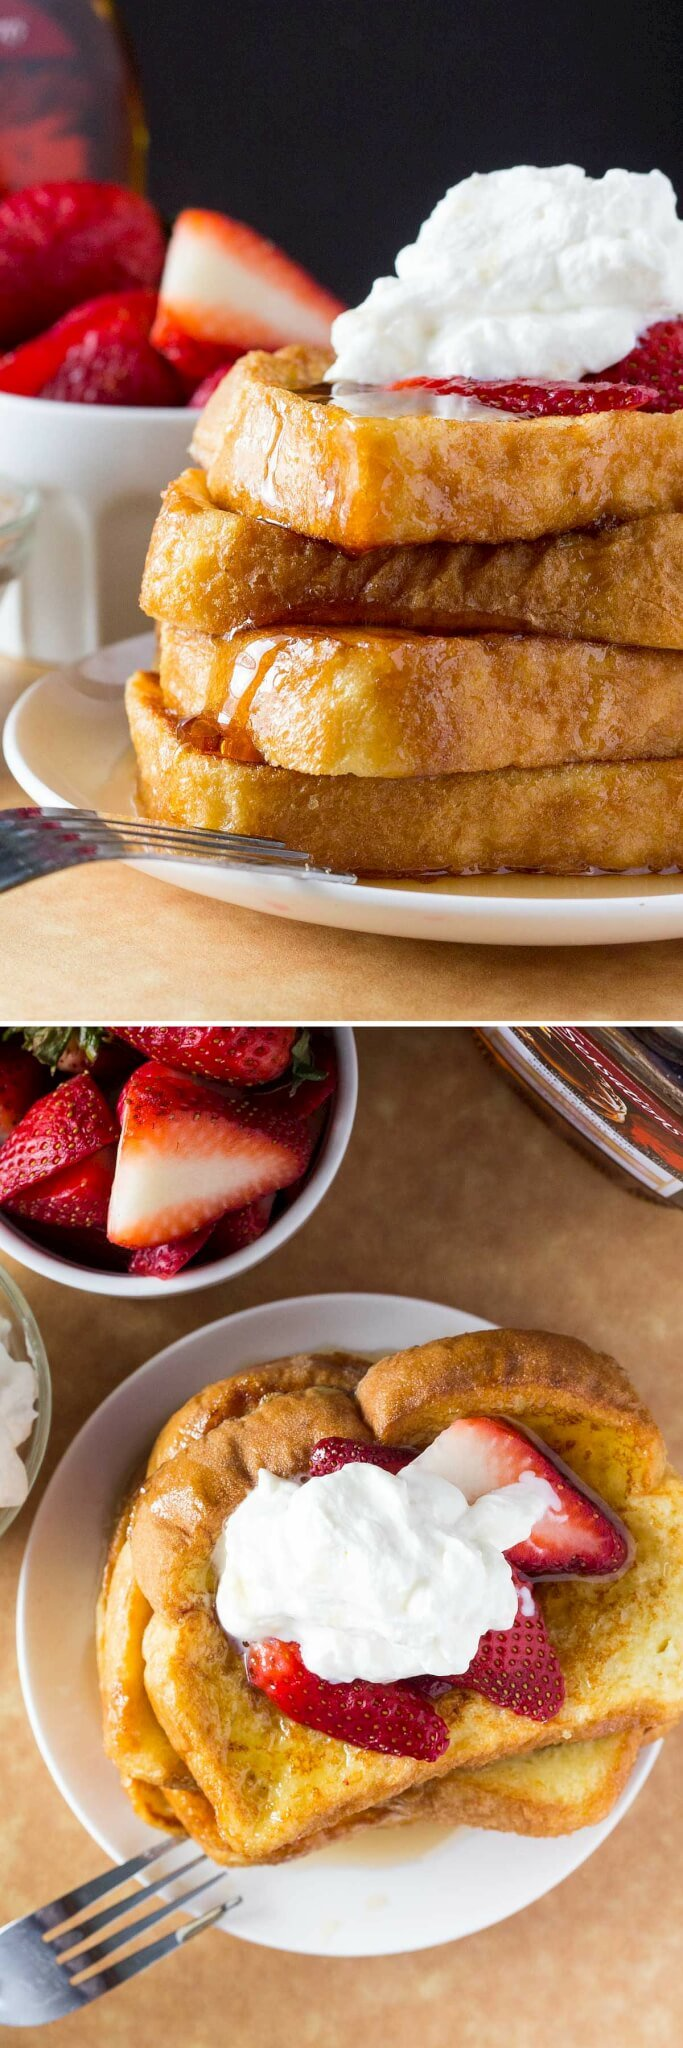 The BEST French Toast - fluffy, buttery, golden brown, topped with maple syrup and the best reason to get out of bed!